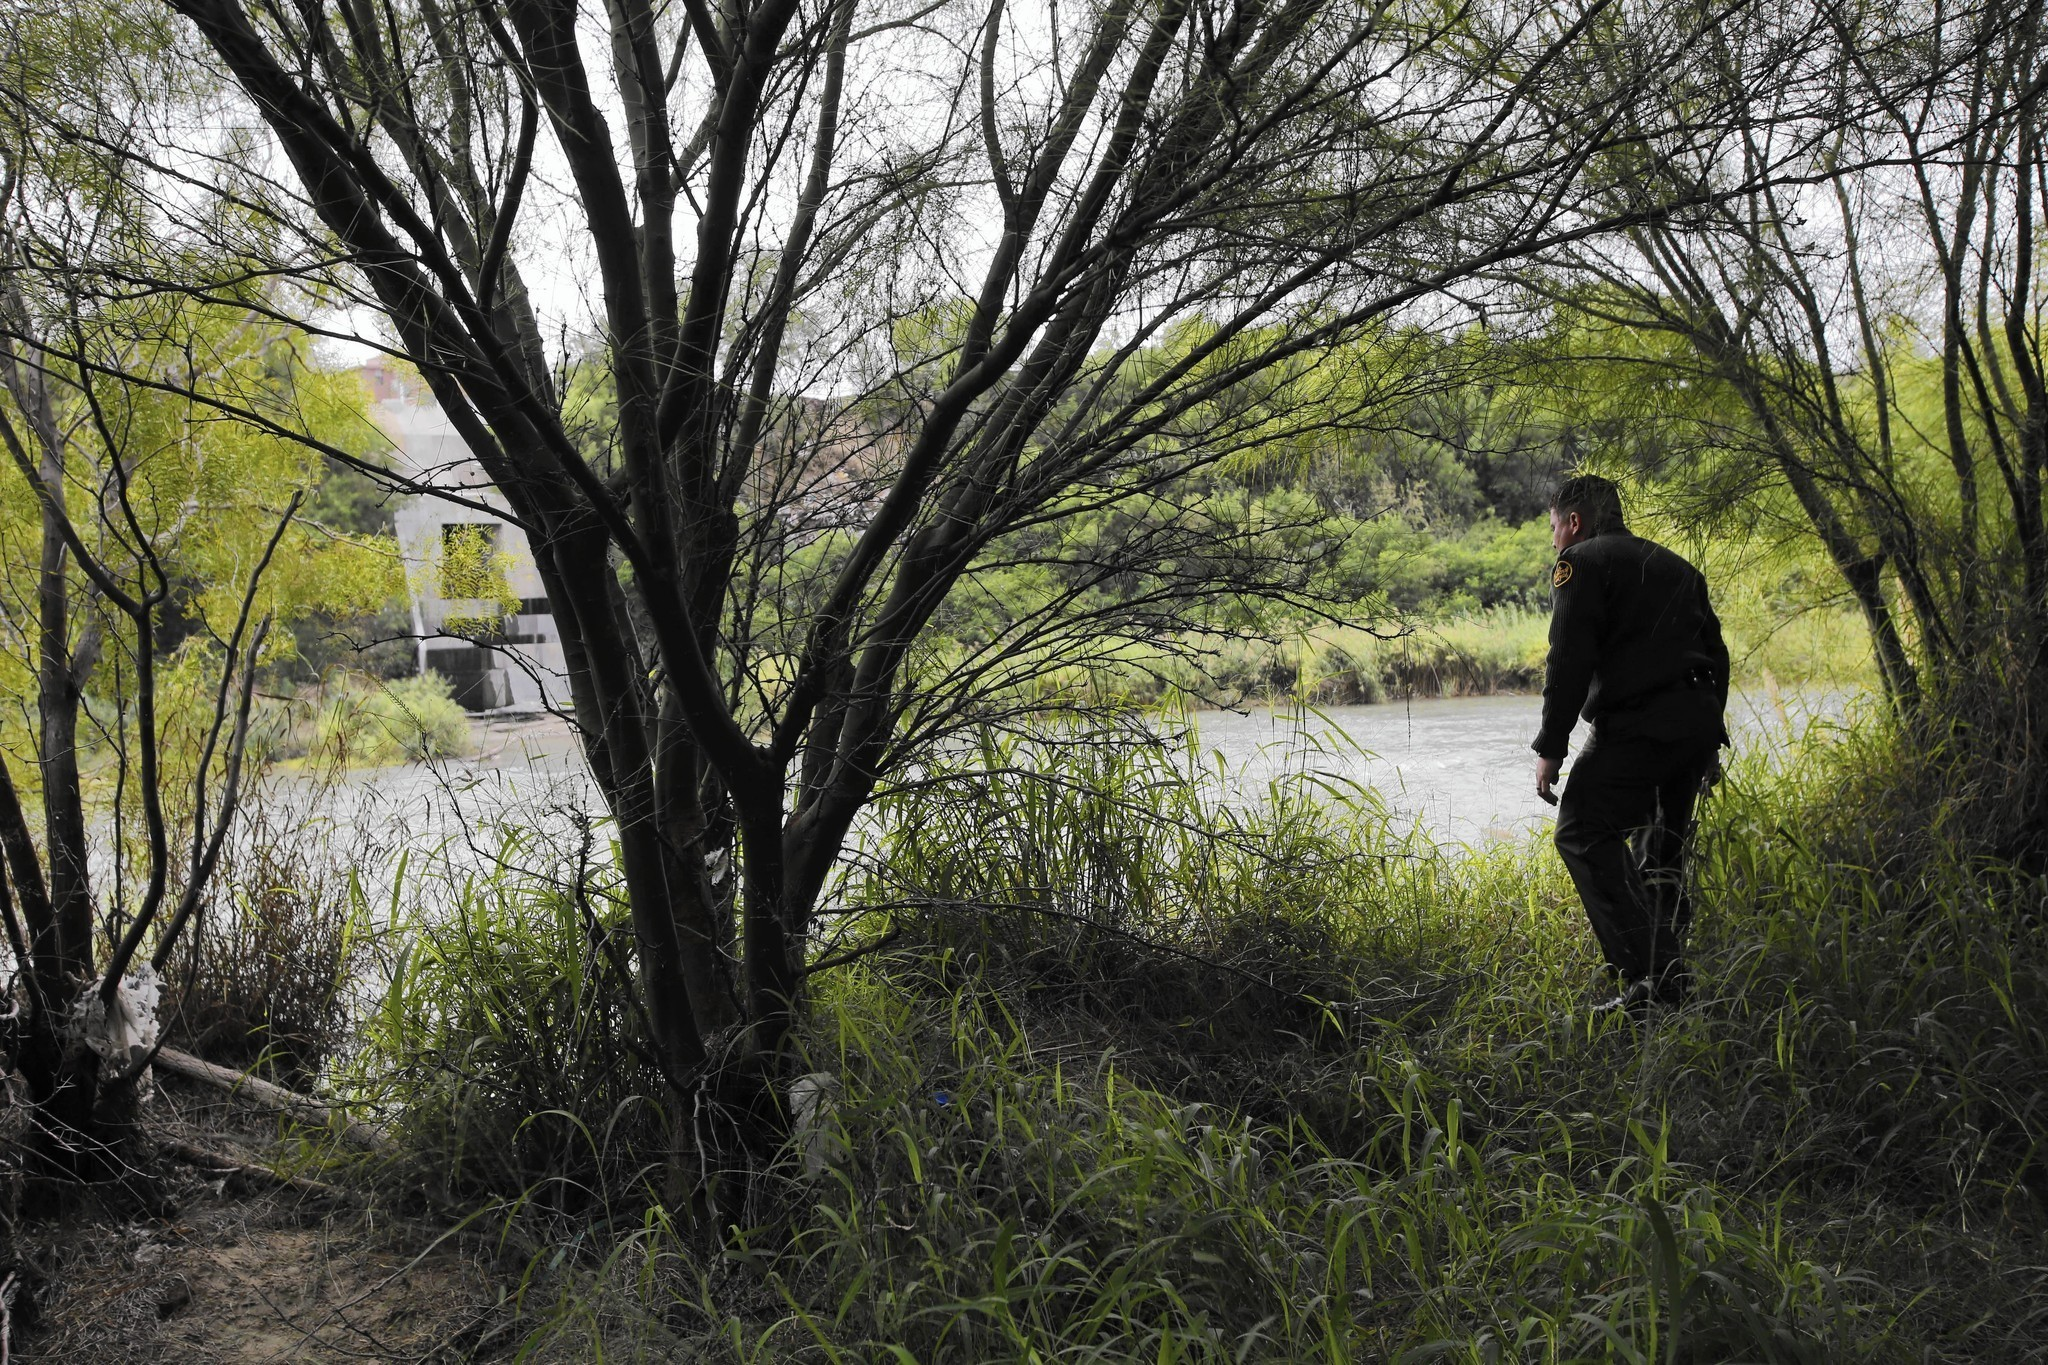 Middle Easterners crossing border from Mexico? It's rare